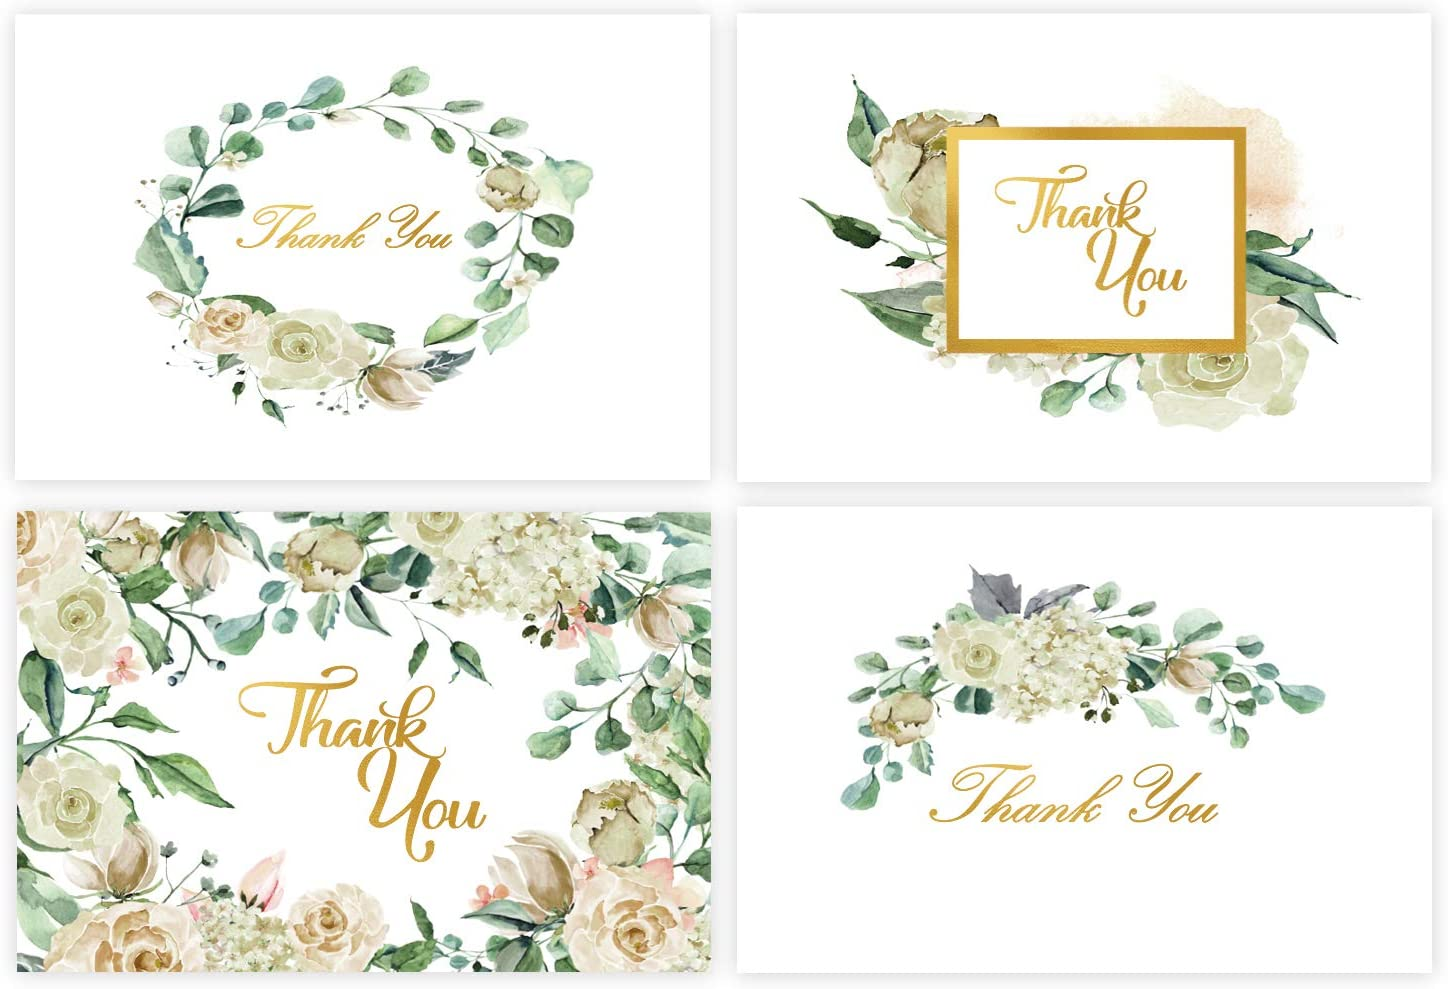 48 Thank You Cards Bulk w/Gold Foil Stickers & White Envelopes – 4x6 Blank Note Cards – Perfect for Weddings, Bridal Showers, Graduation, and Baby Showers